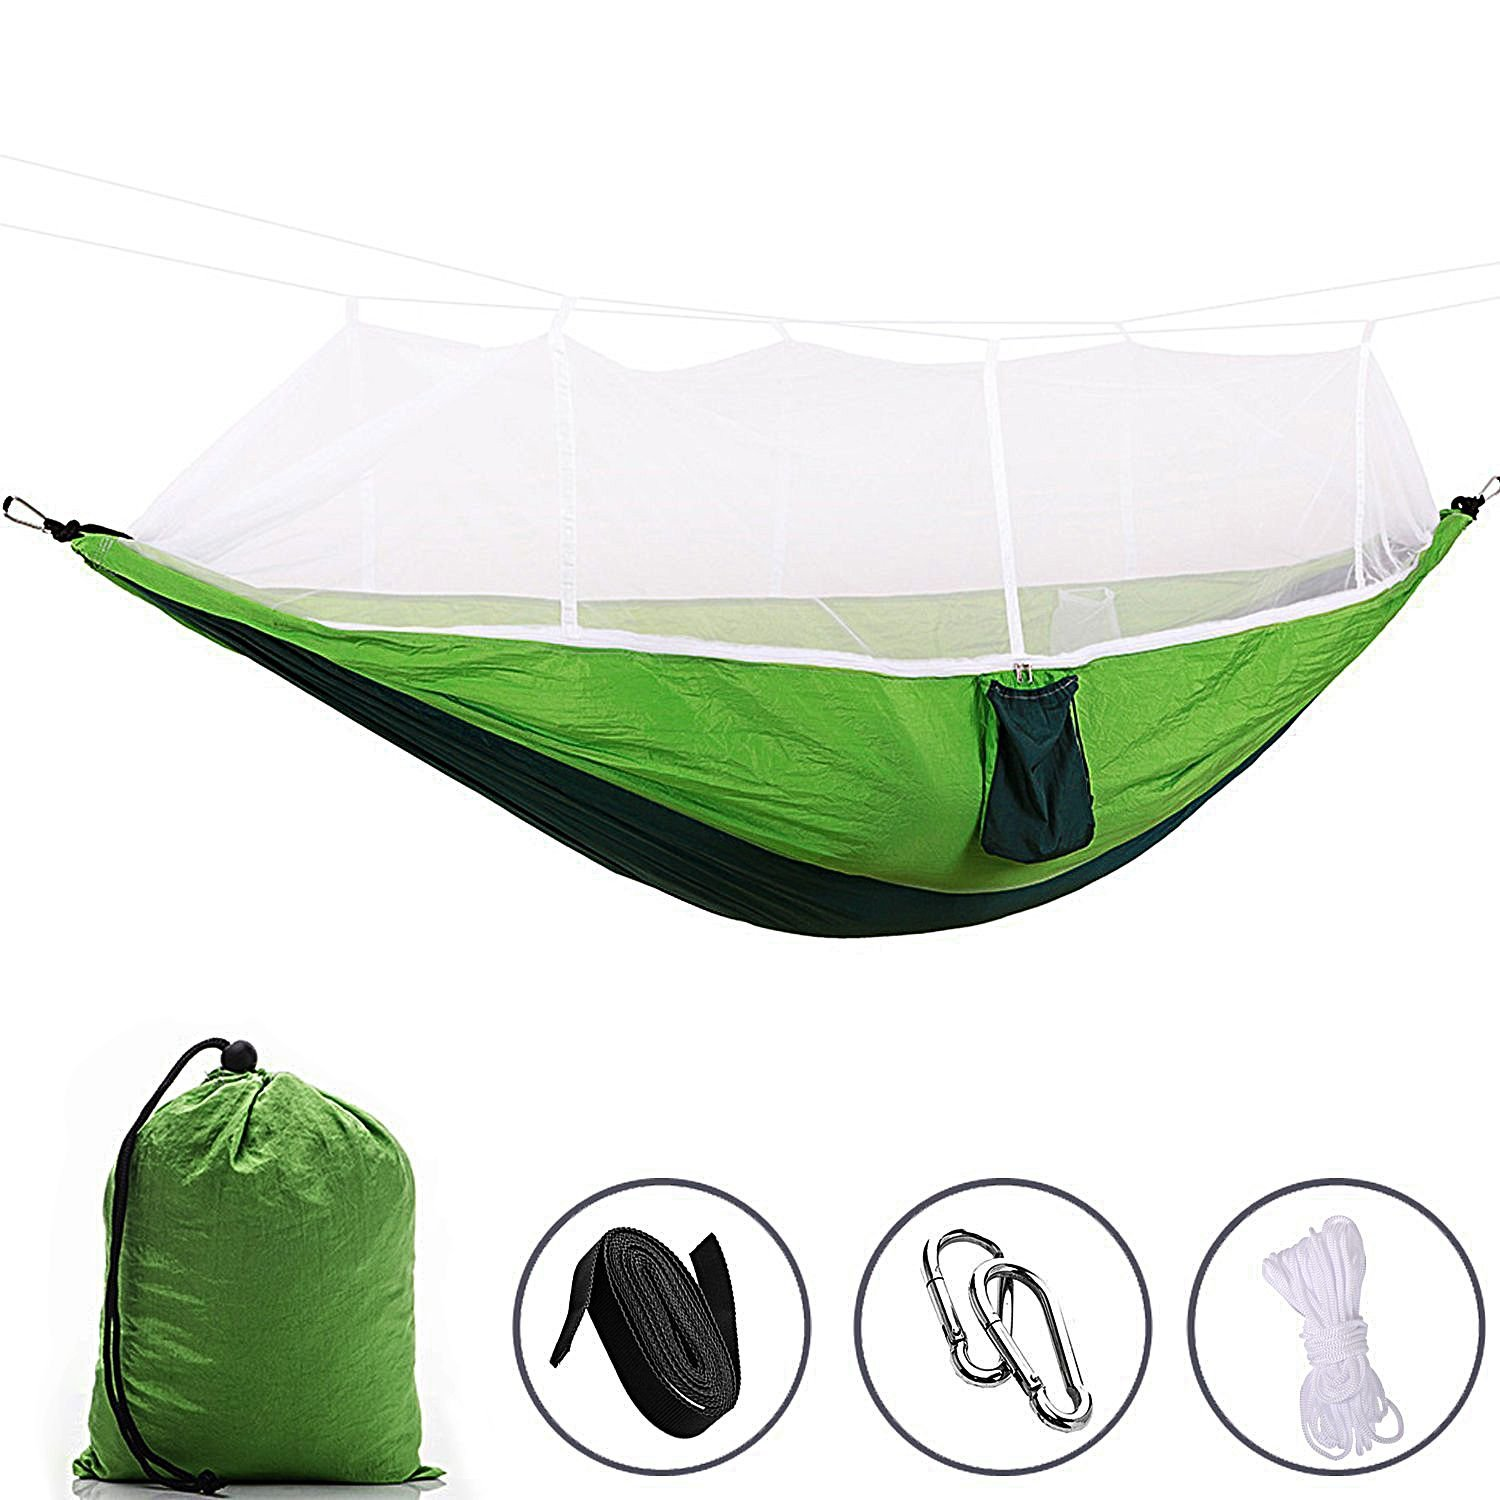 YUZHISEN Double Hammock with Mosquito Net 440 Pounds Capacity Sturdy & Lightweight for Outdoor Backpacking Camping Trip Hiking Indoor Garden Yard (Dark Green)